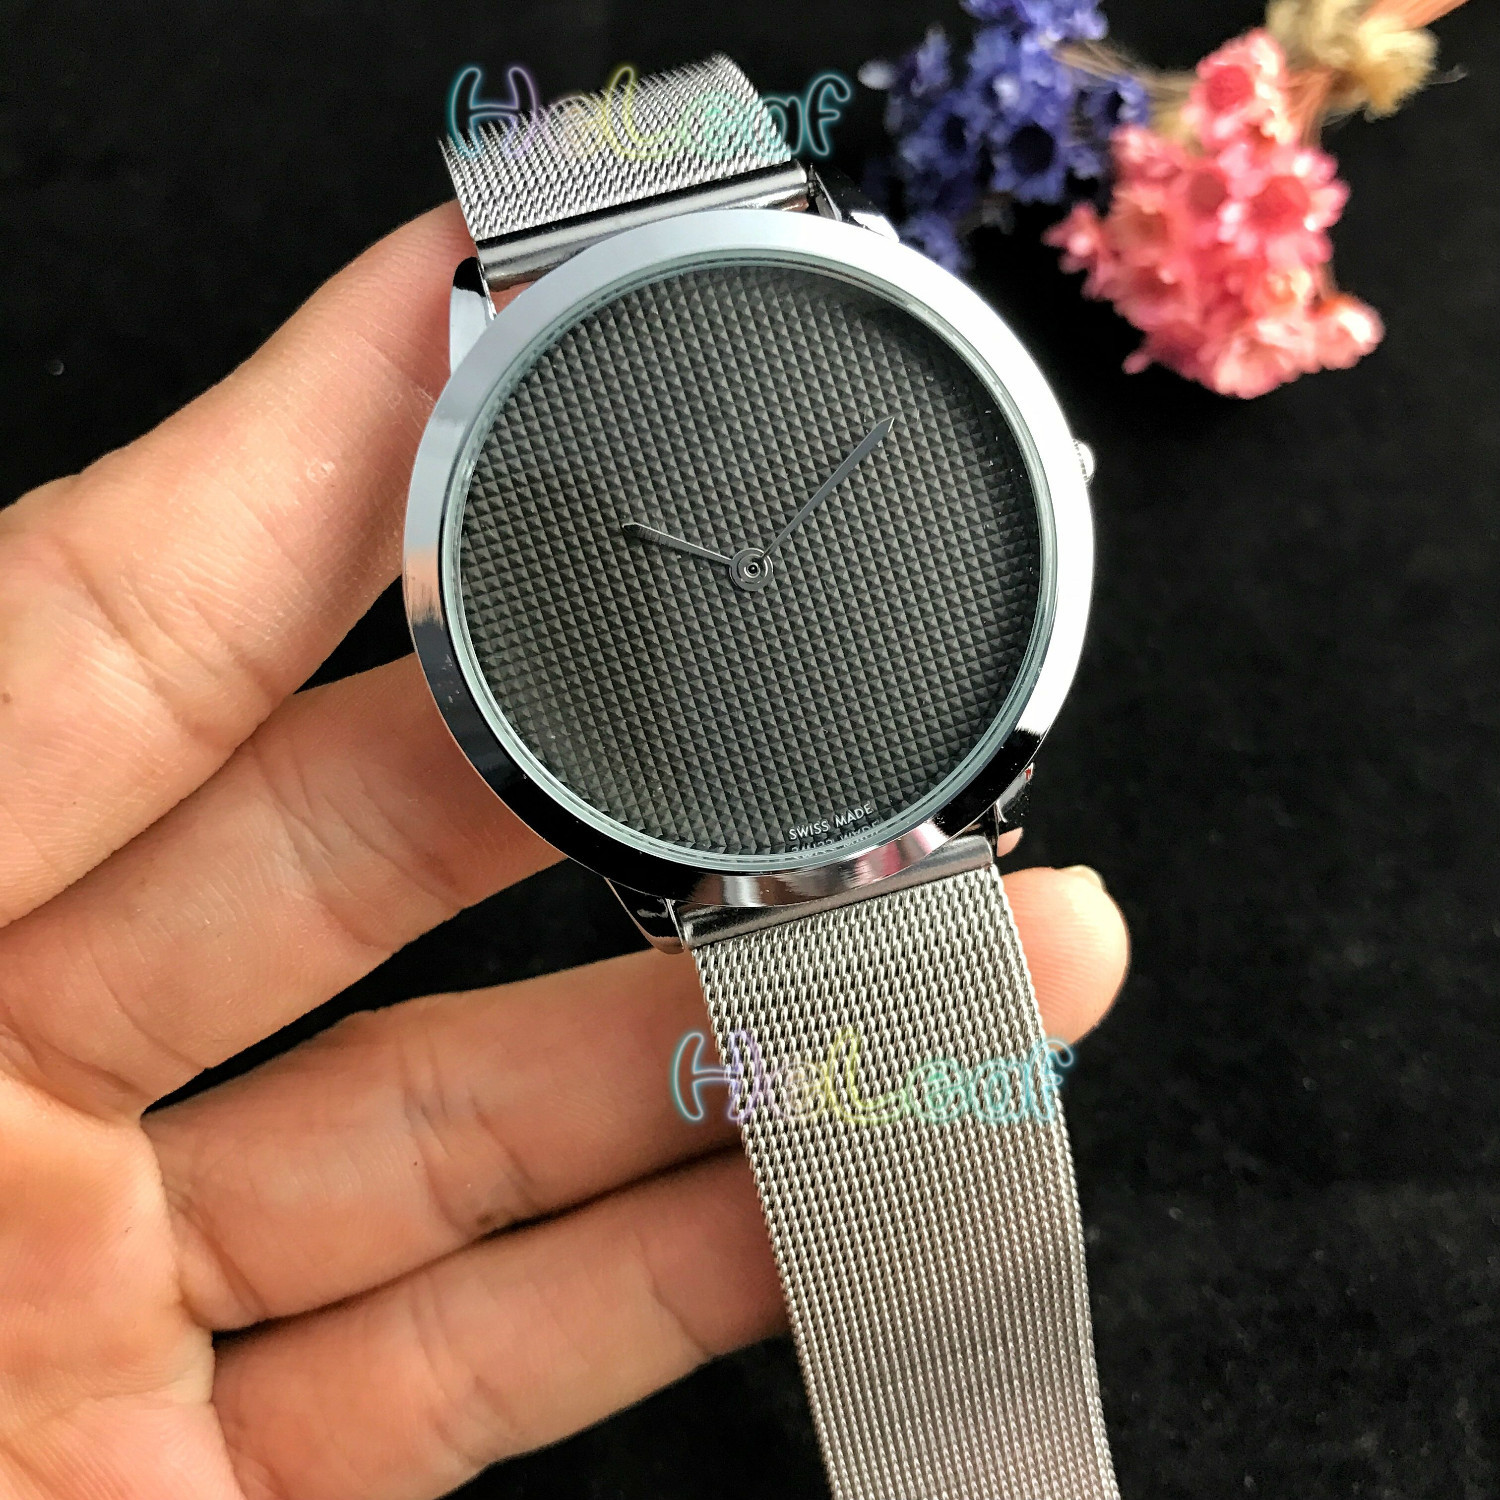 Luxury Reloj Mujer Hot Sale Newest Top Men Silver Gold Steel Brand Quartz Watch Male Black Clock Montre Femme Relogio Feminino